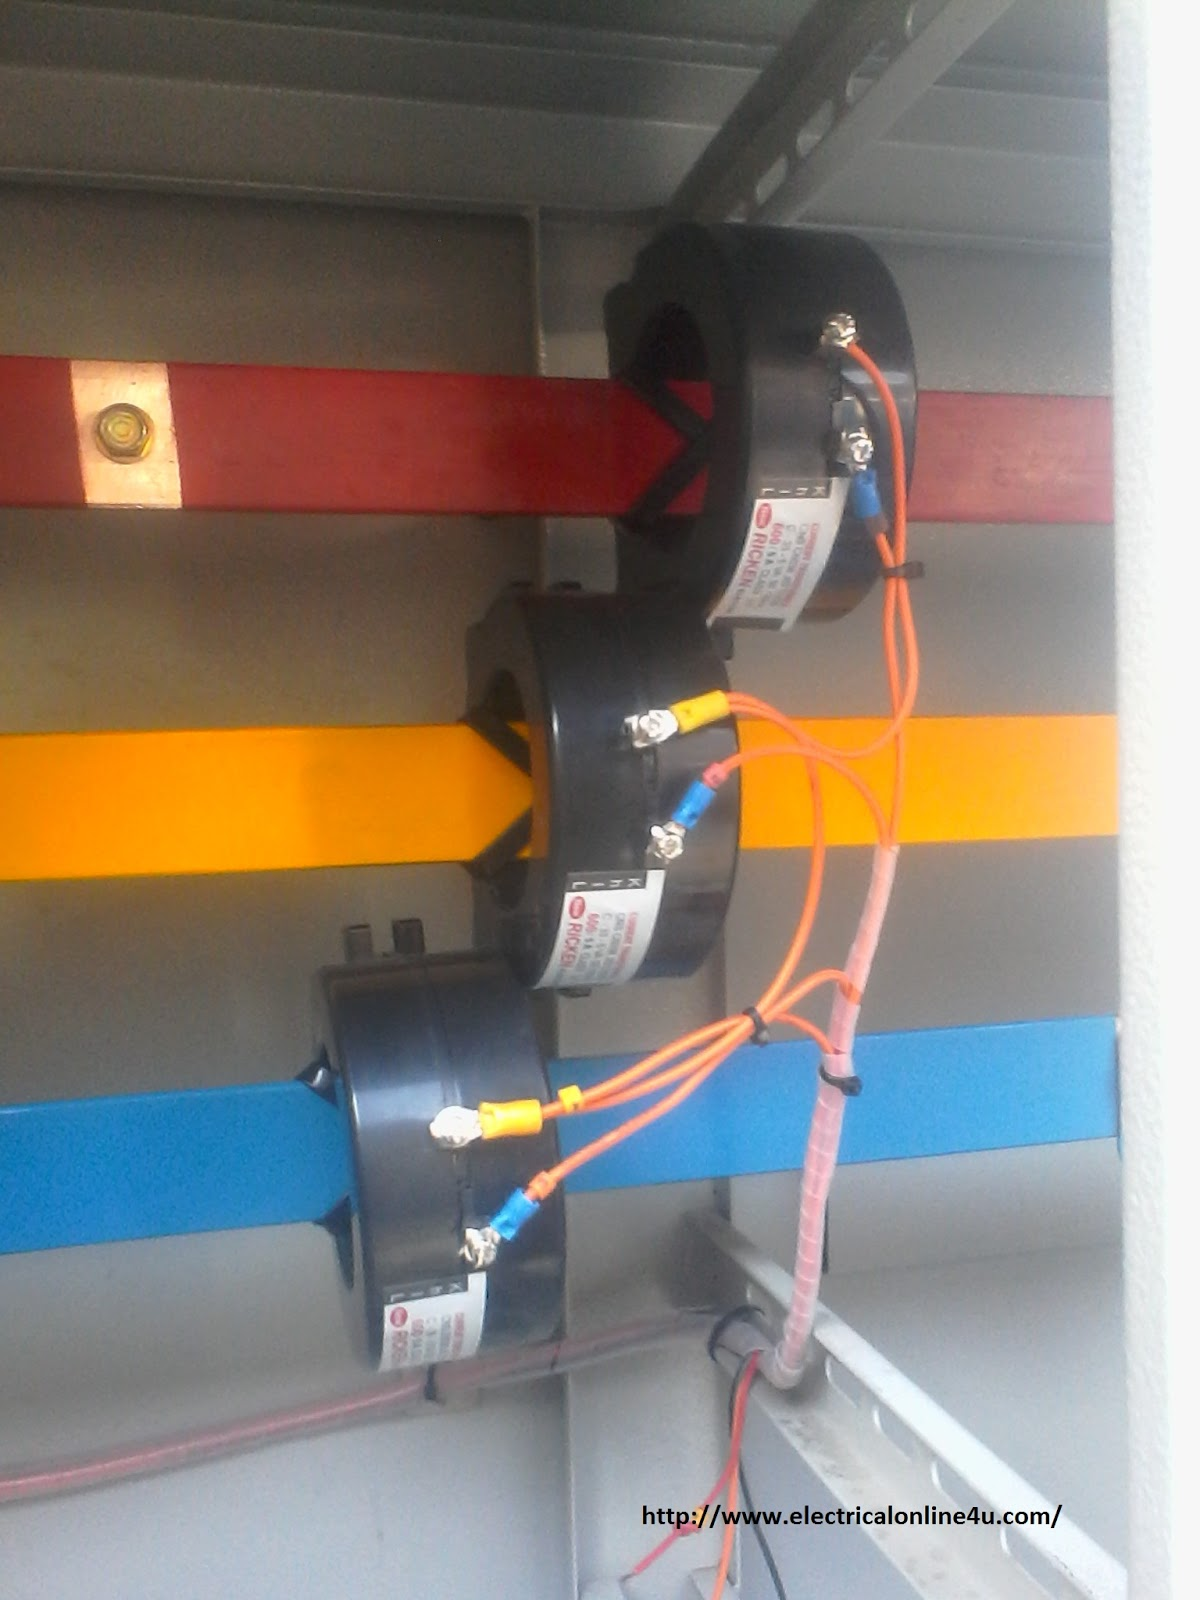 current%2Btransformer%2Binstillation%2Bfor%2Bthree%2Bphase%2Bwiring current transformer installation for three phase power supply ct Basic Electrical Wiring Diagrams at pacquiaovsvargaslive.co